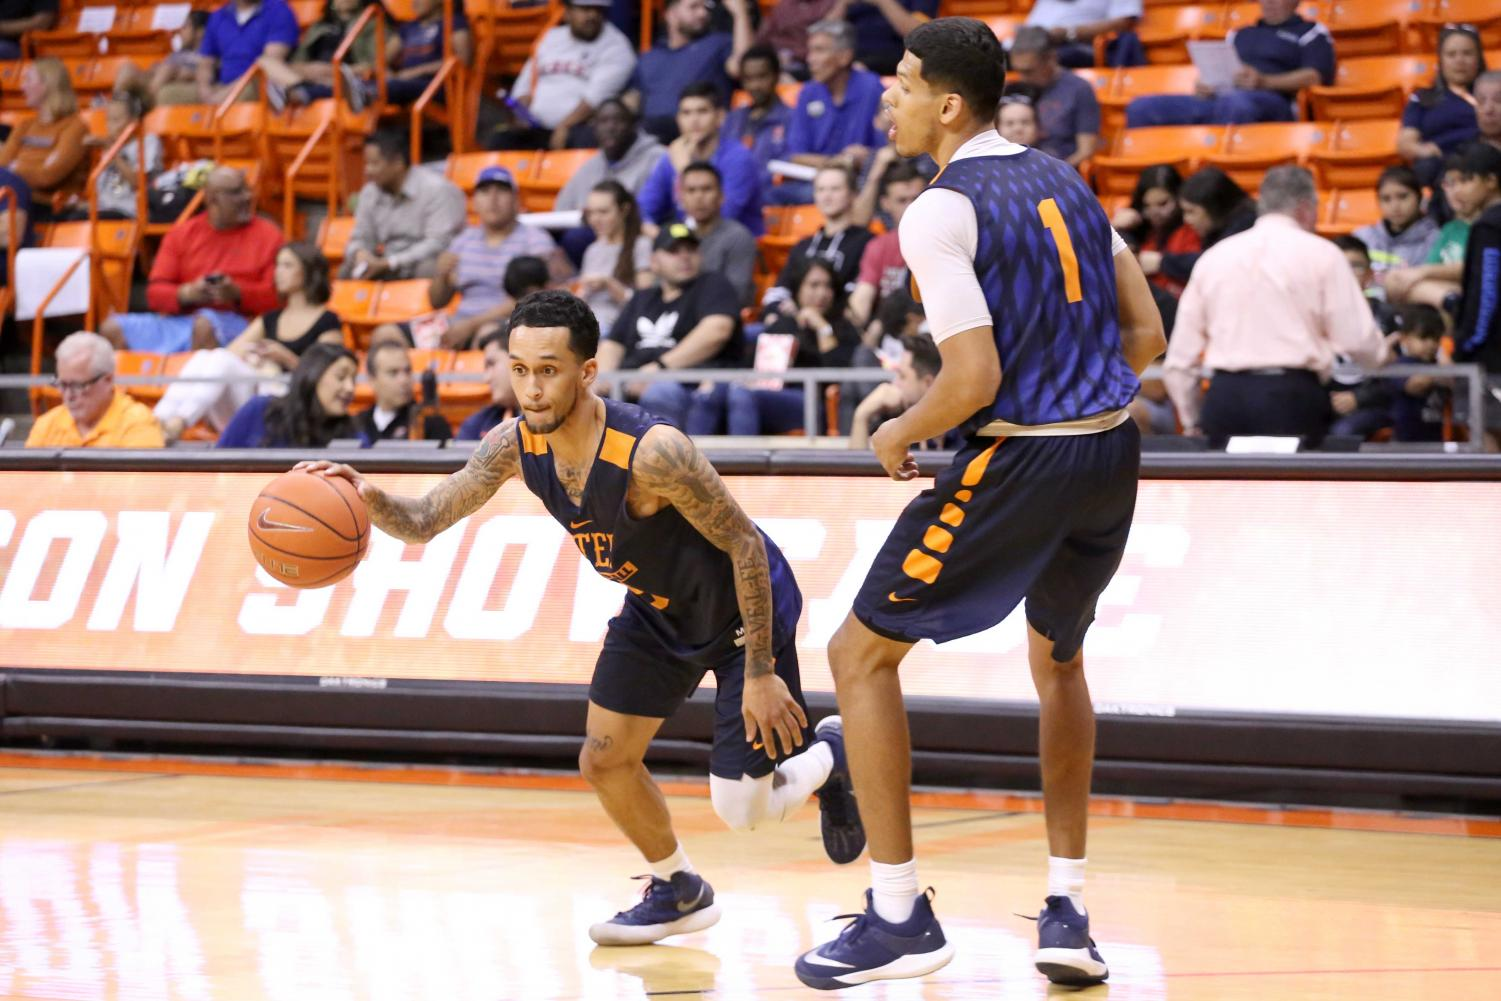 Sophomore guard Kobe Magee works on drills with senior Paul Thomas during the basketball pre season showcase at the Don Haskins Center on Wednesday, Oct. 10.